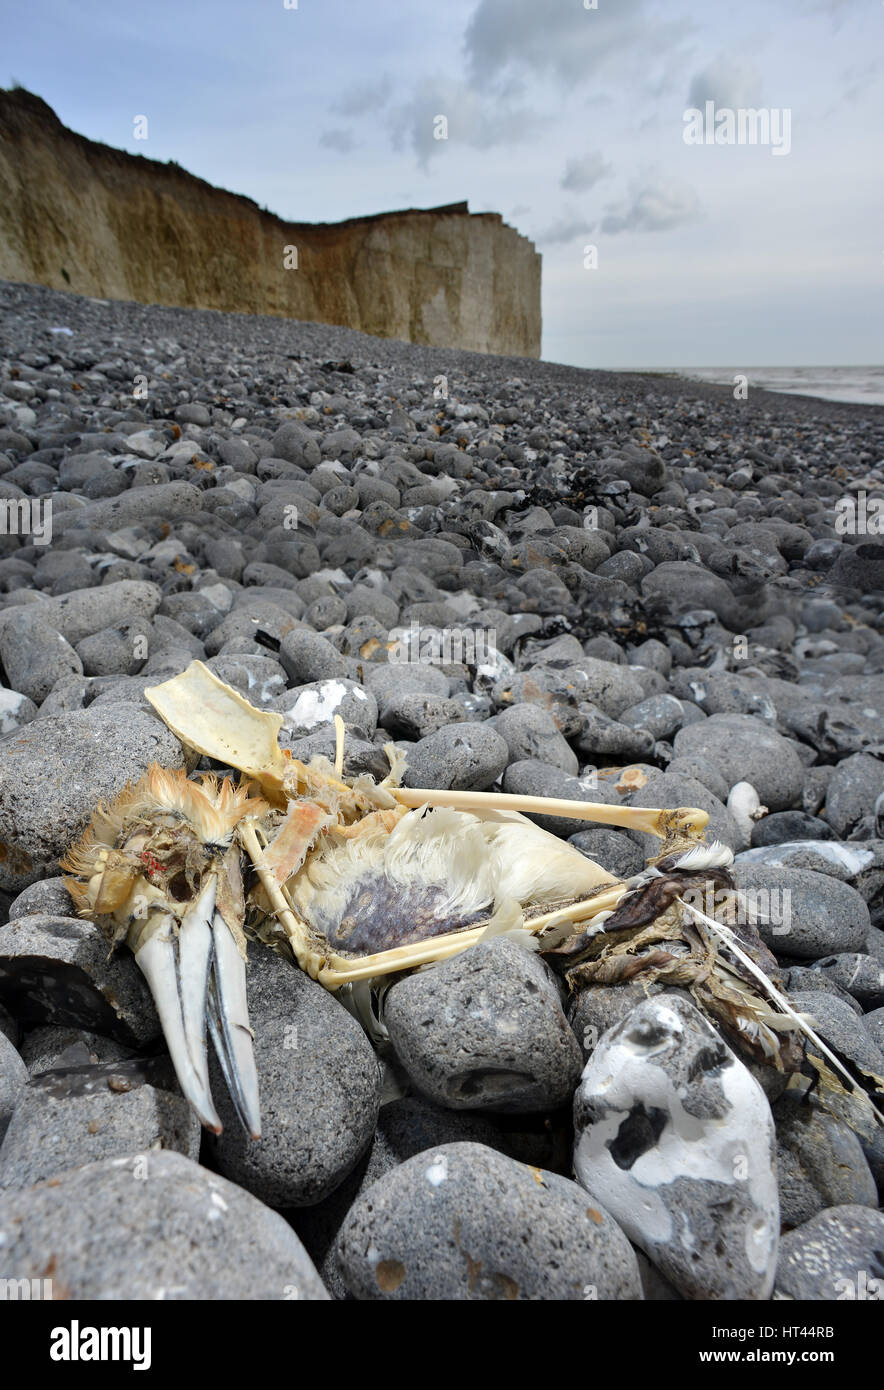 Dead gannet, sea bird, washed up on a pebble beach in Sussex, UK - Stock Image